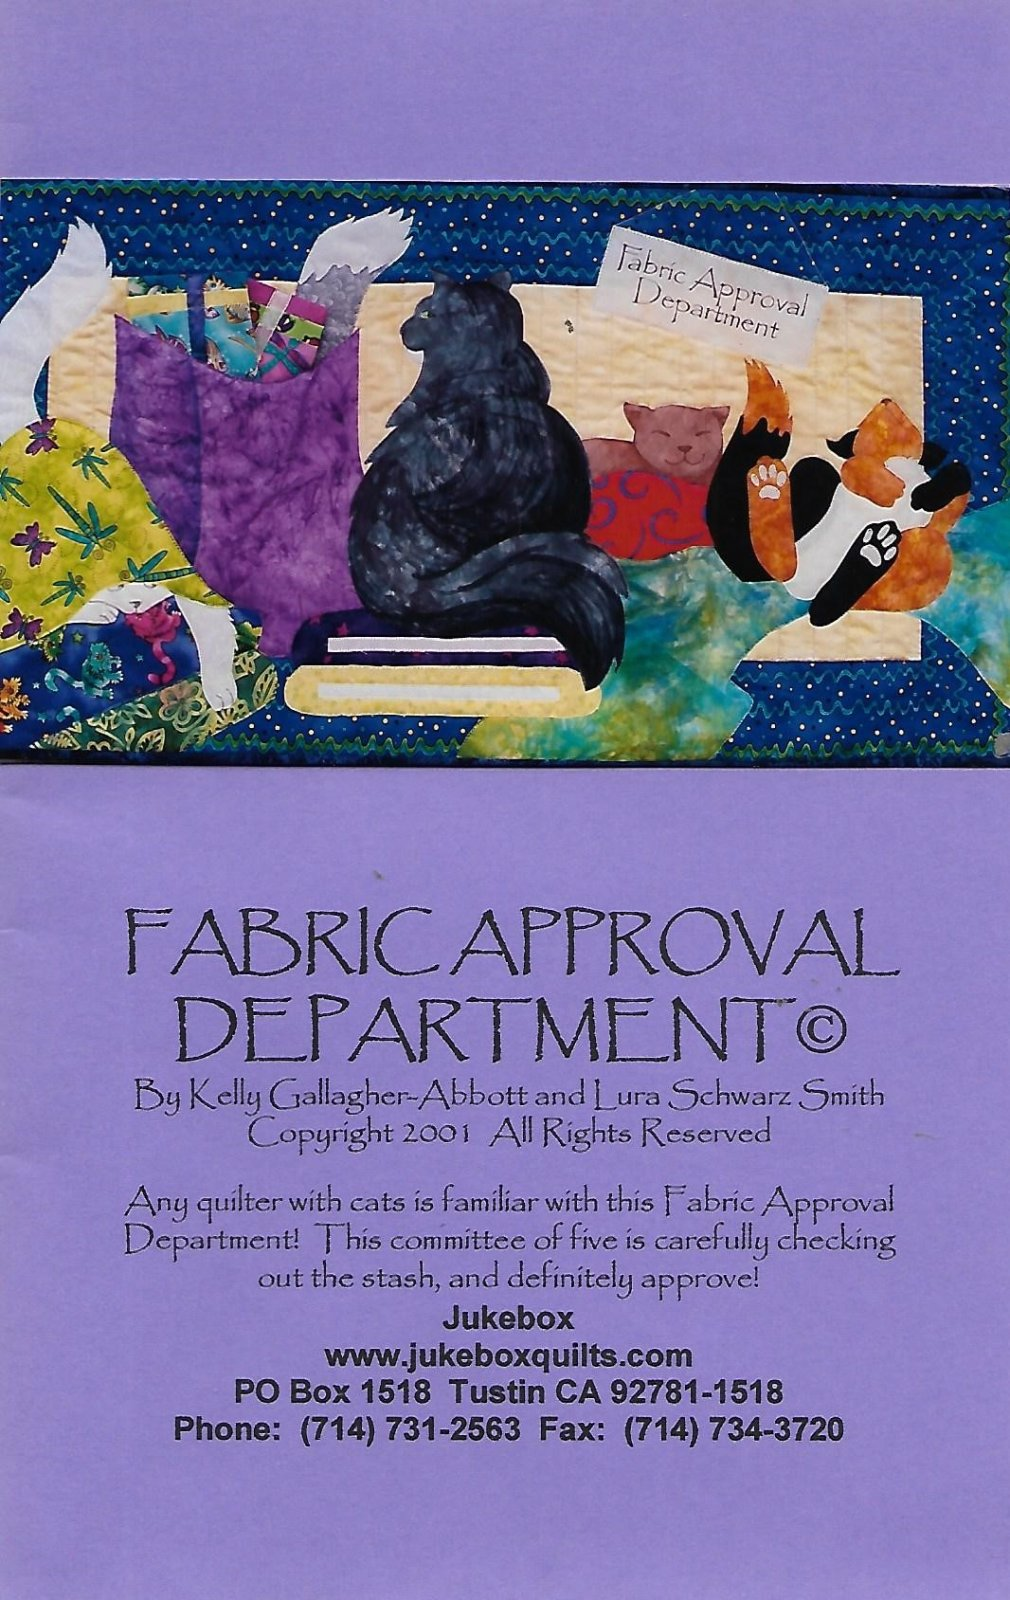 Fabric Approval Department